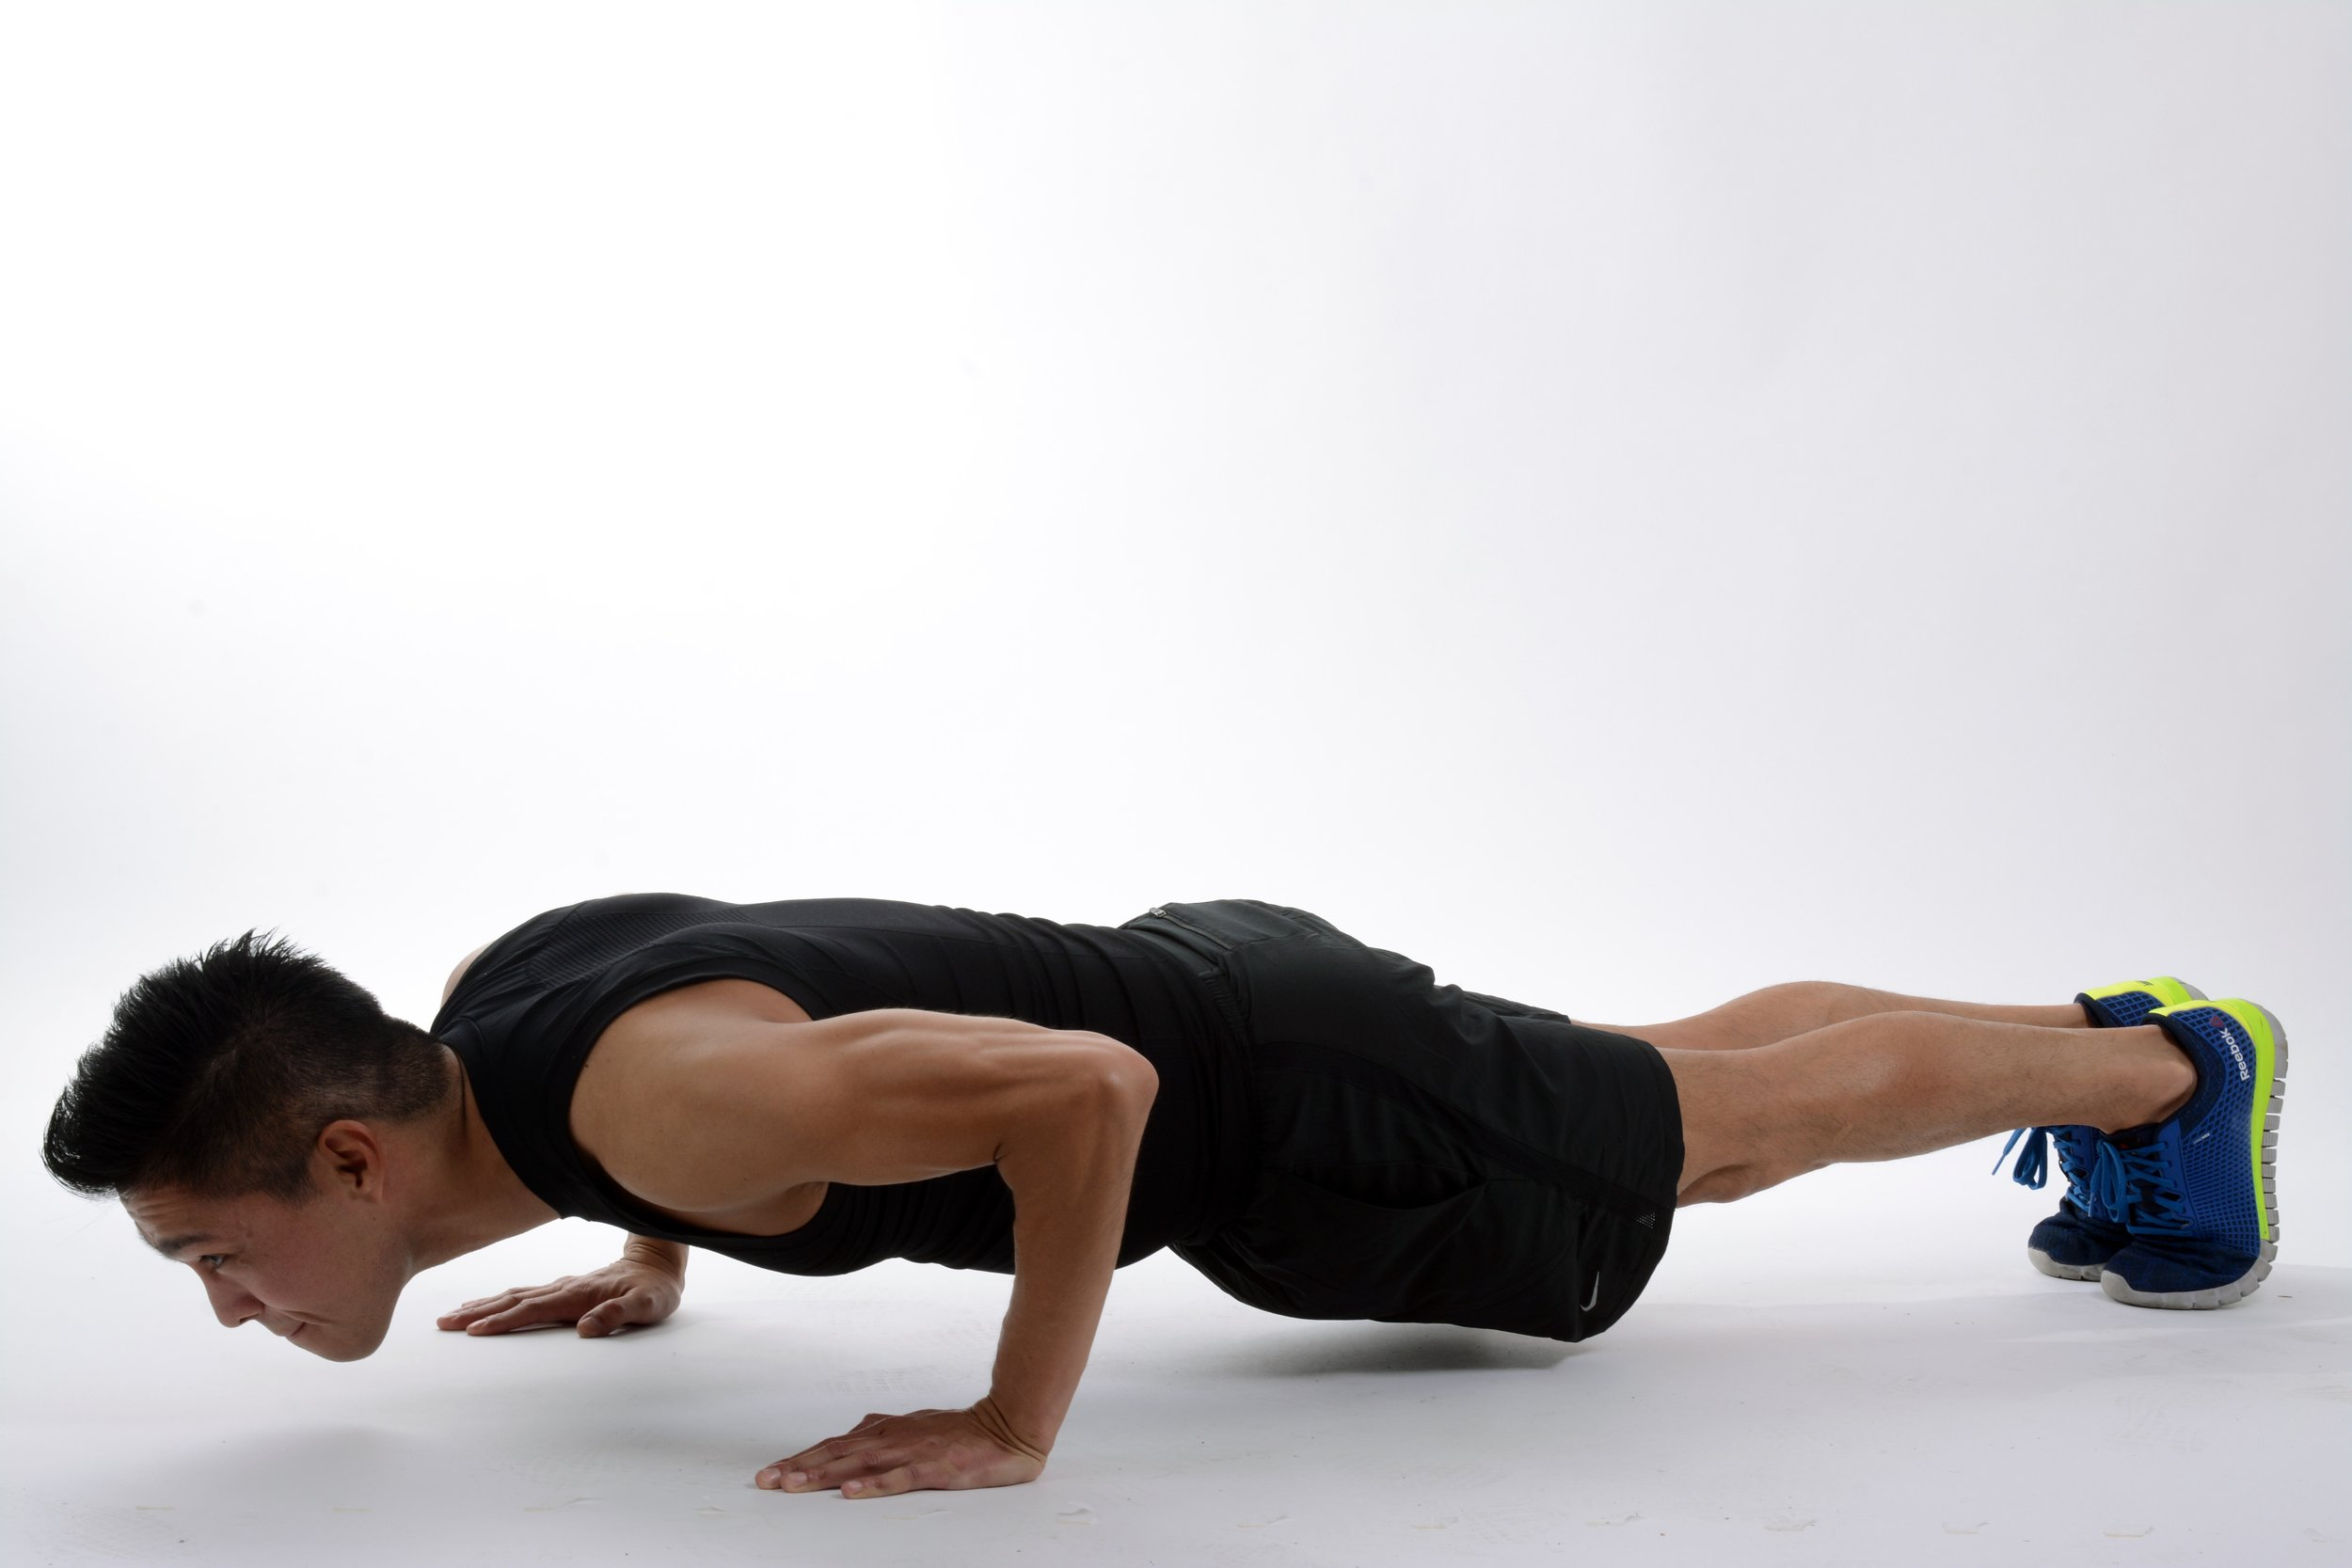 push-up-testing-heart-disease-risk